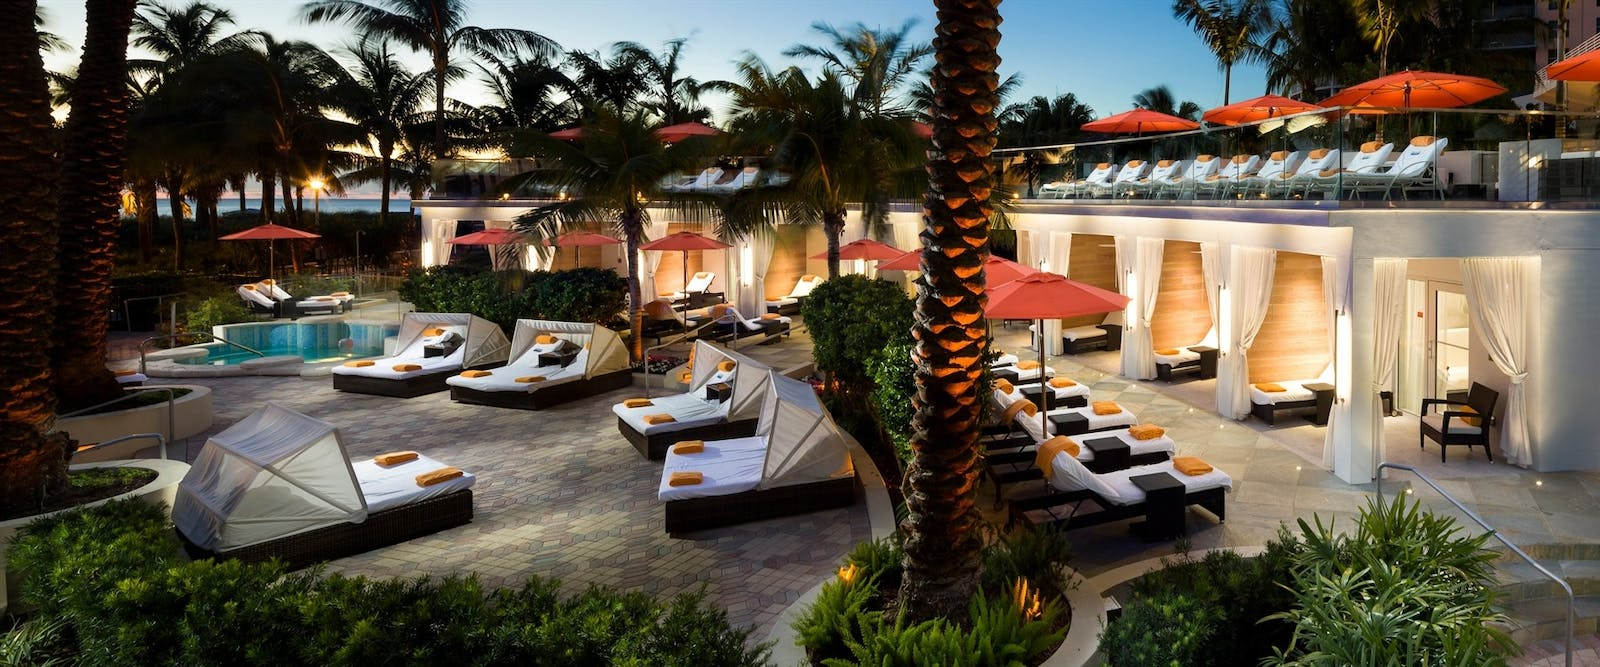 soak cabanas at loews miami beach